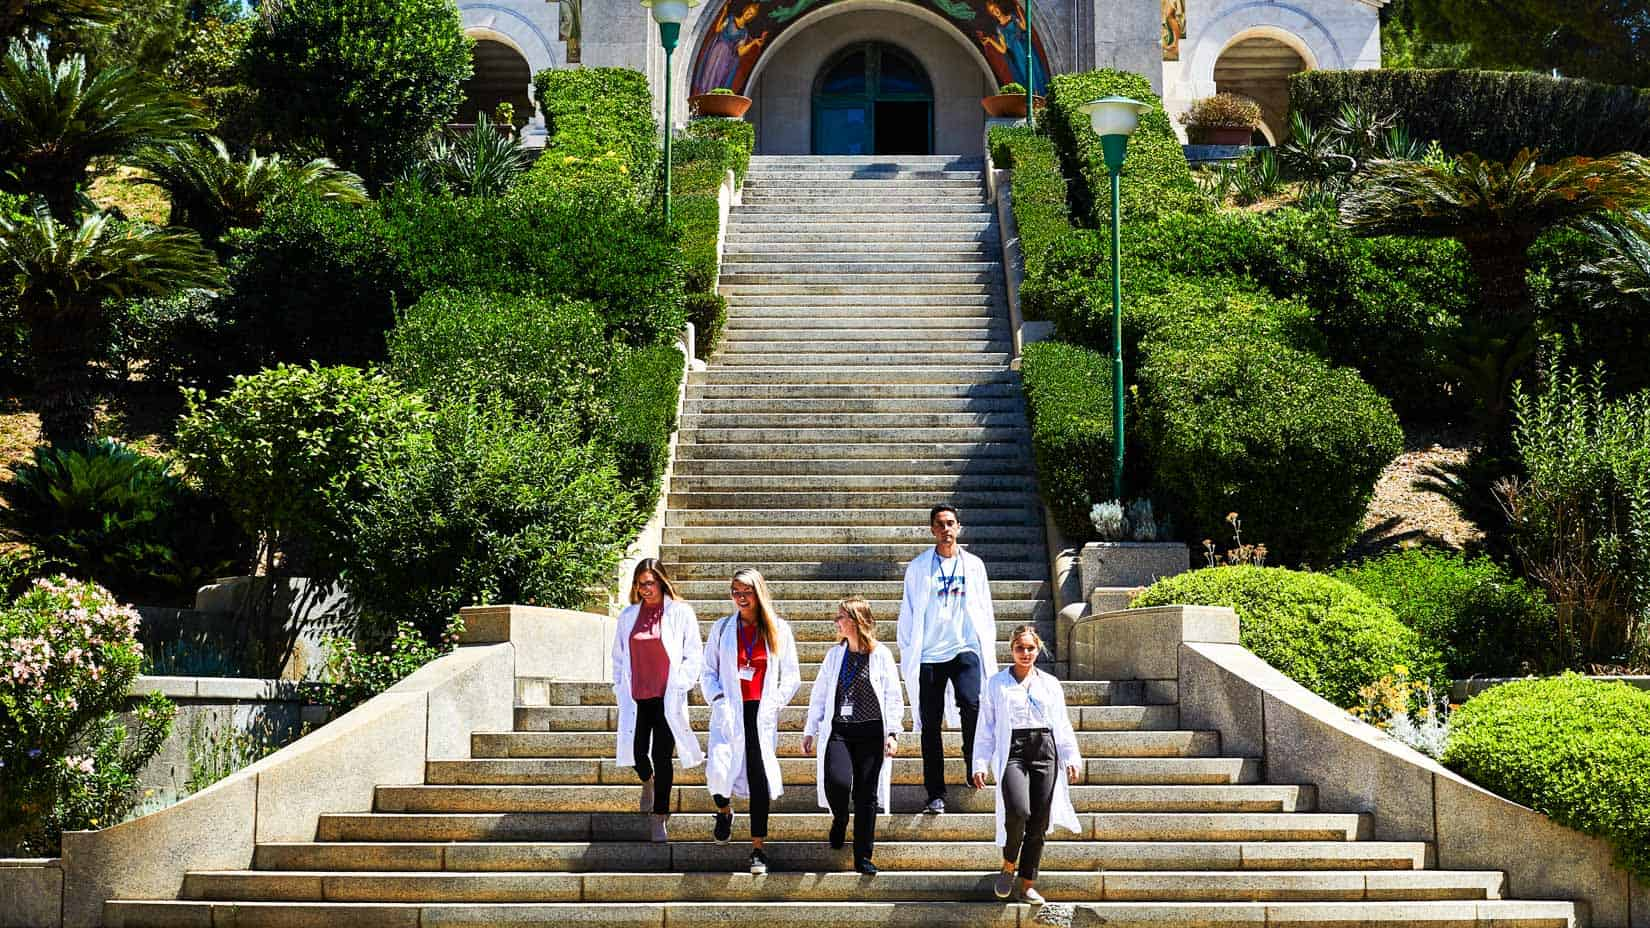 Students on a set of stairs.